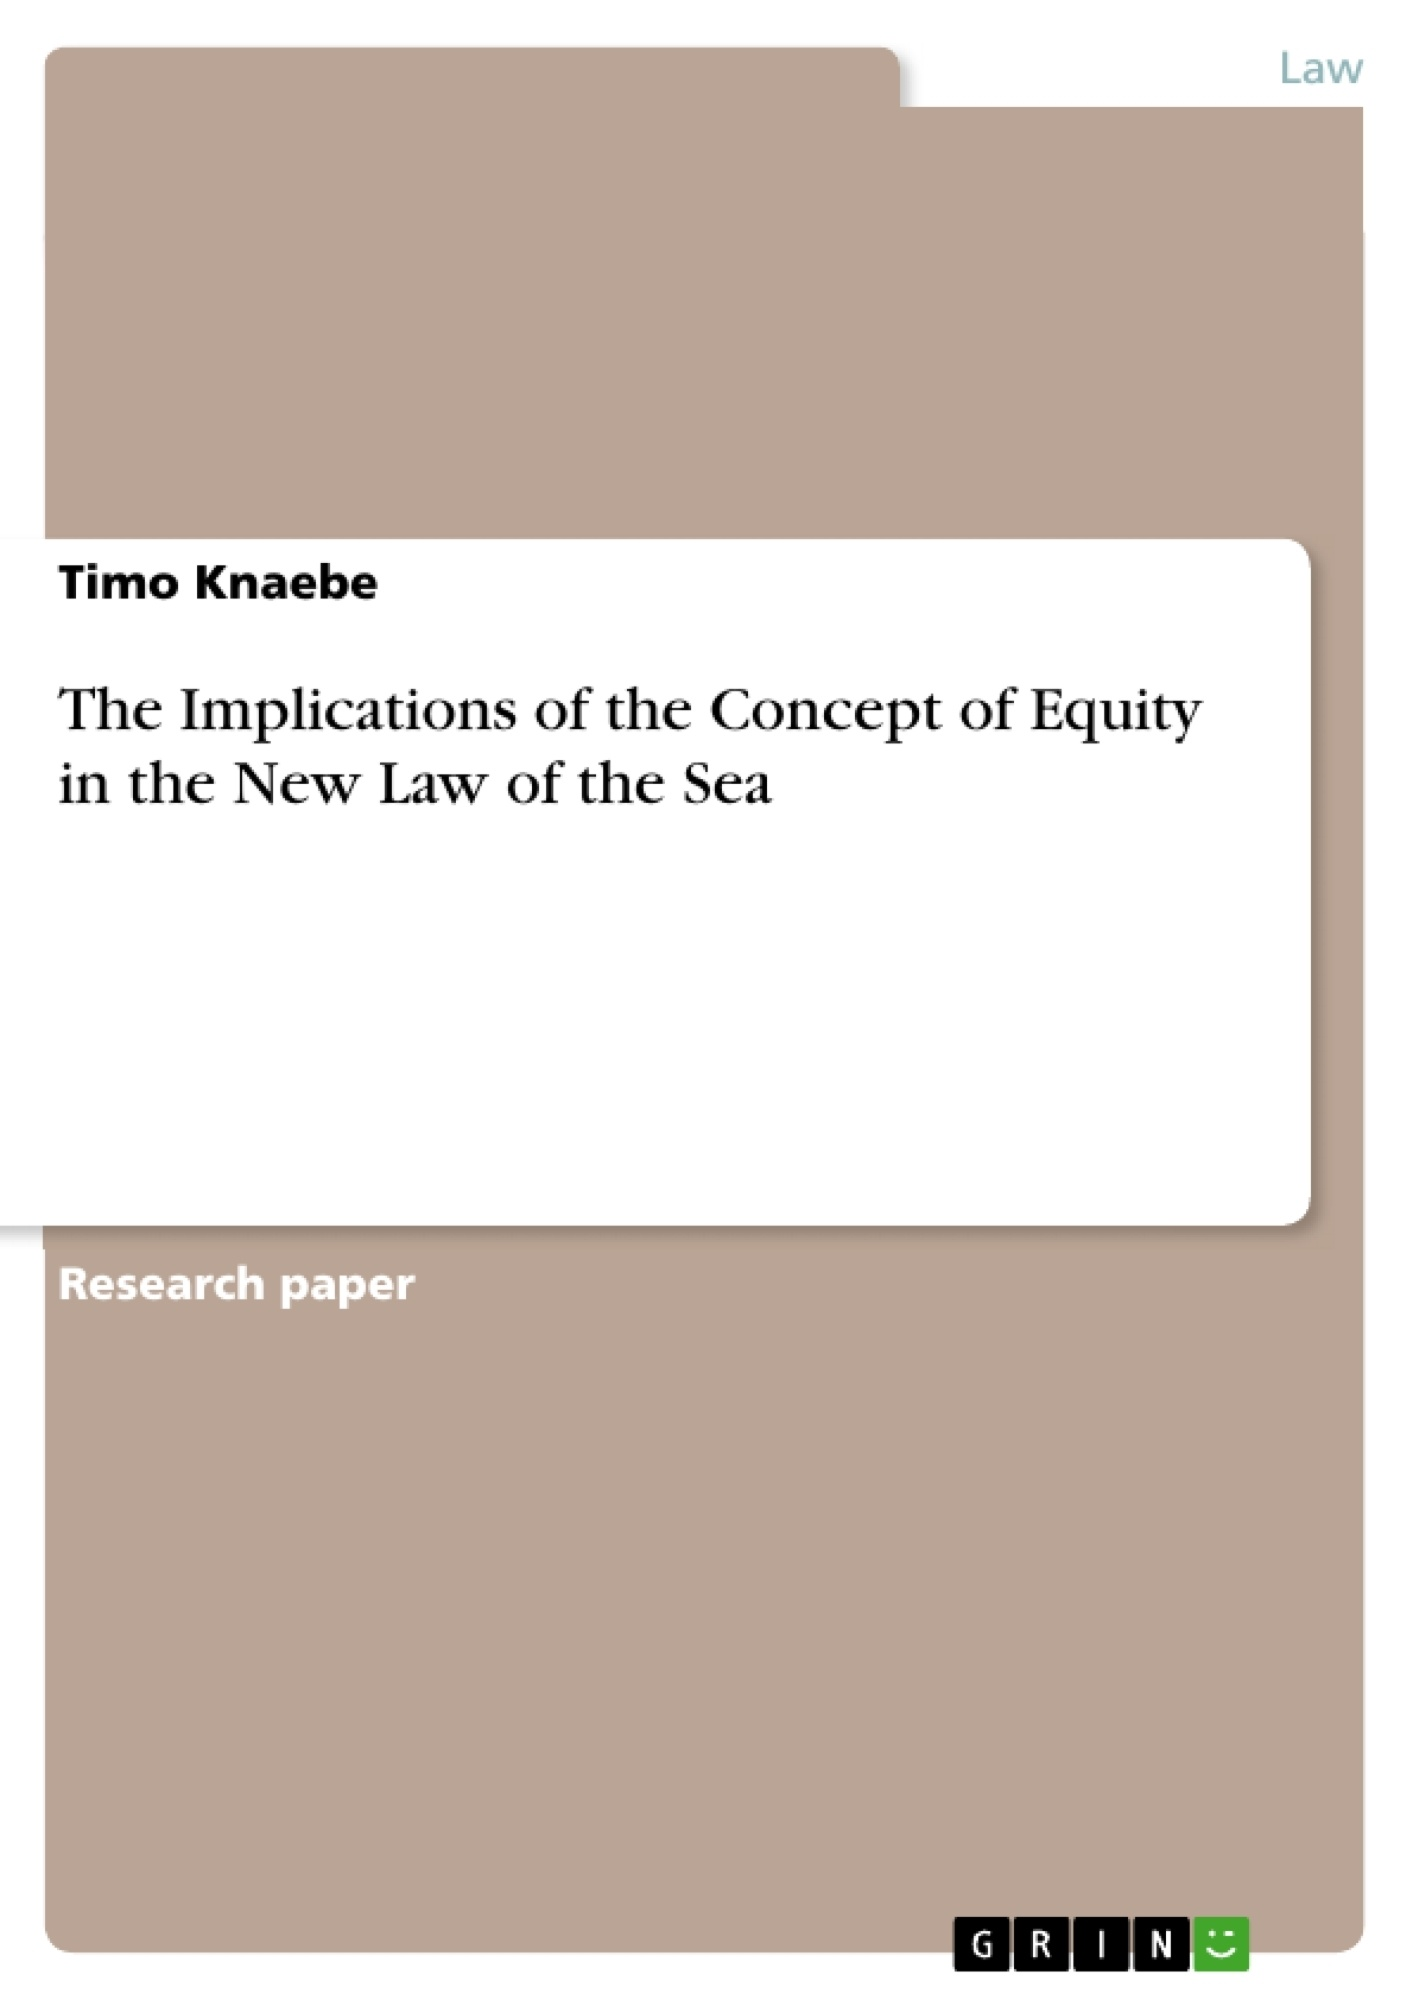 Title: The Implications of the Concept of Equity in the New Law of the Sea